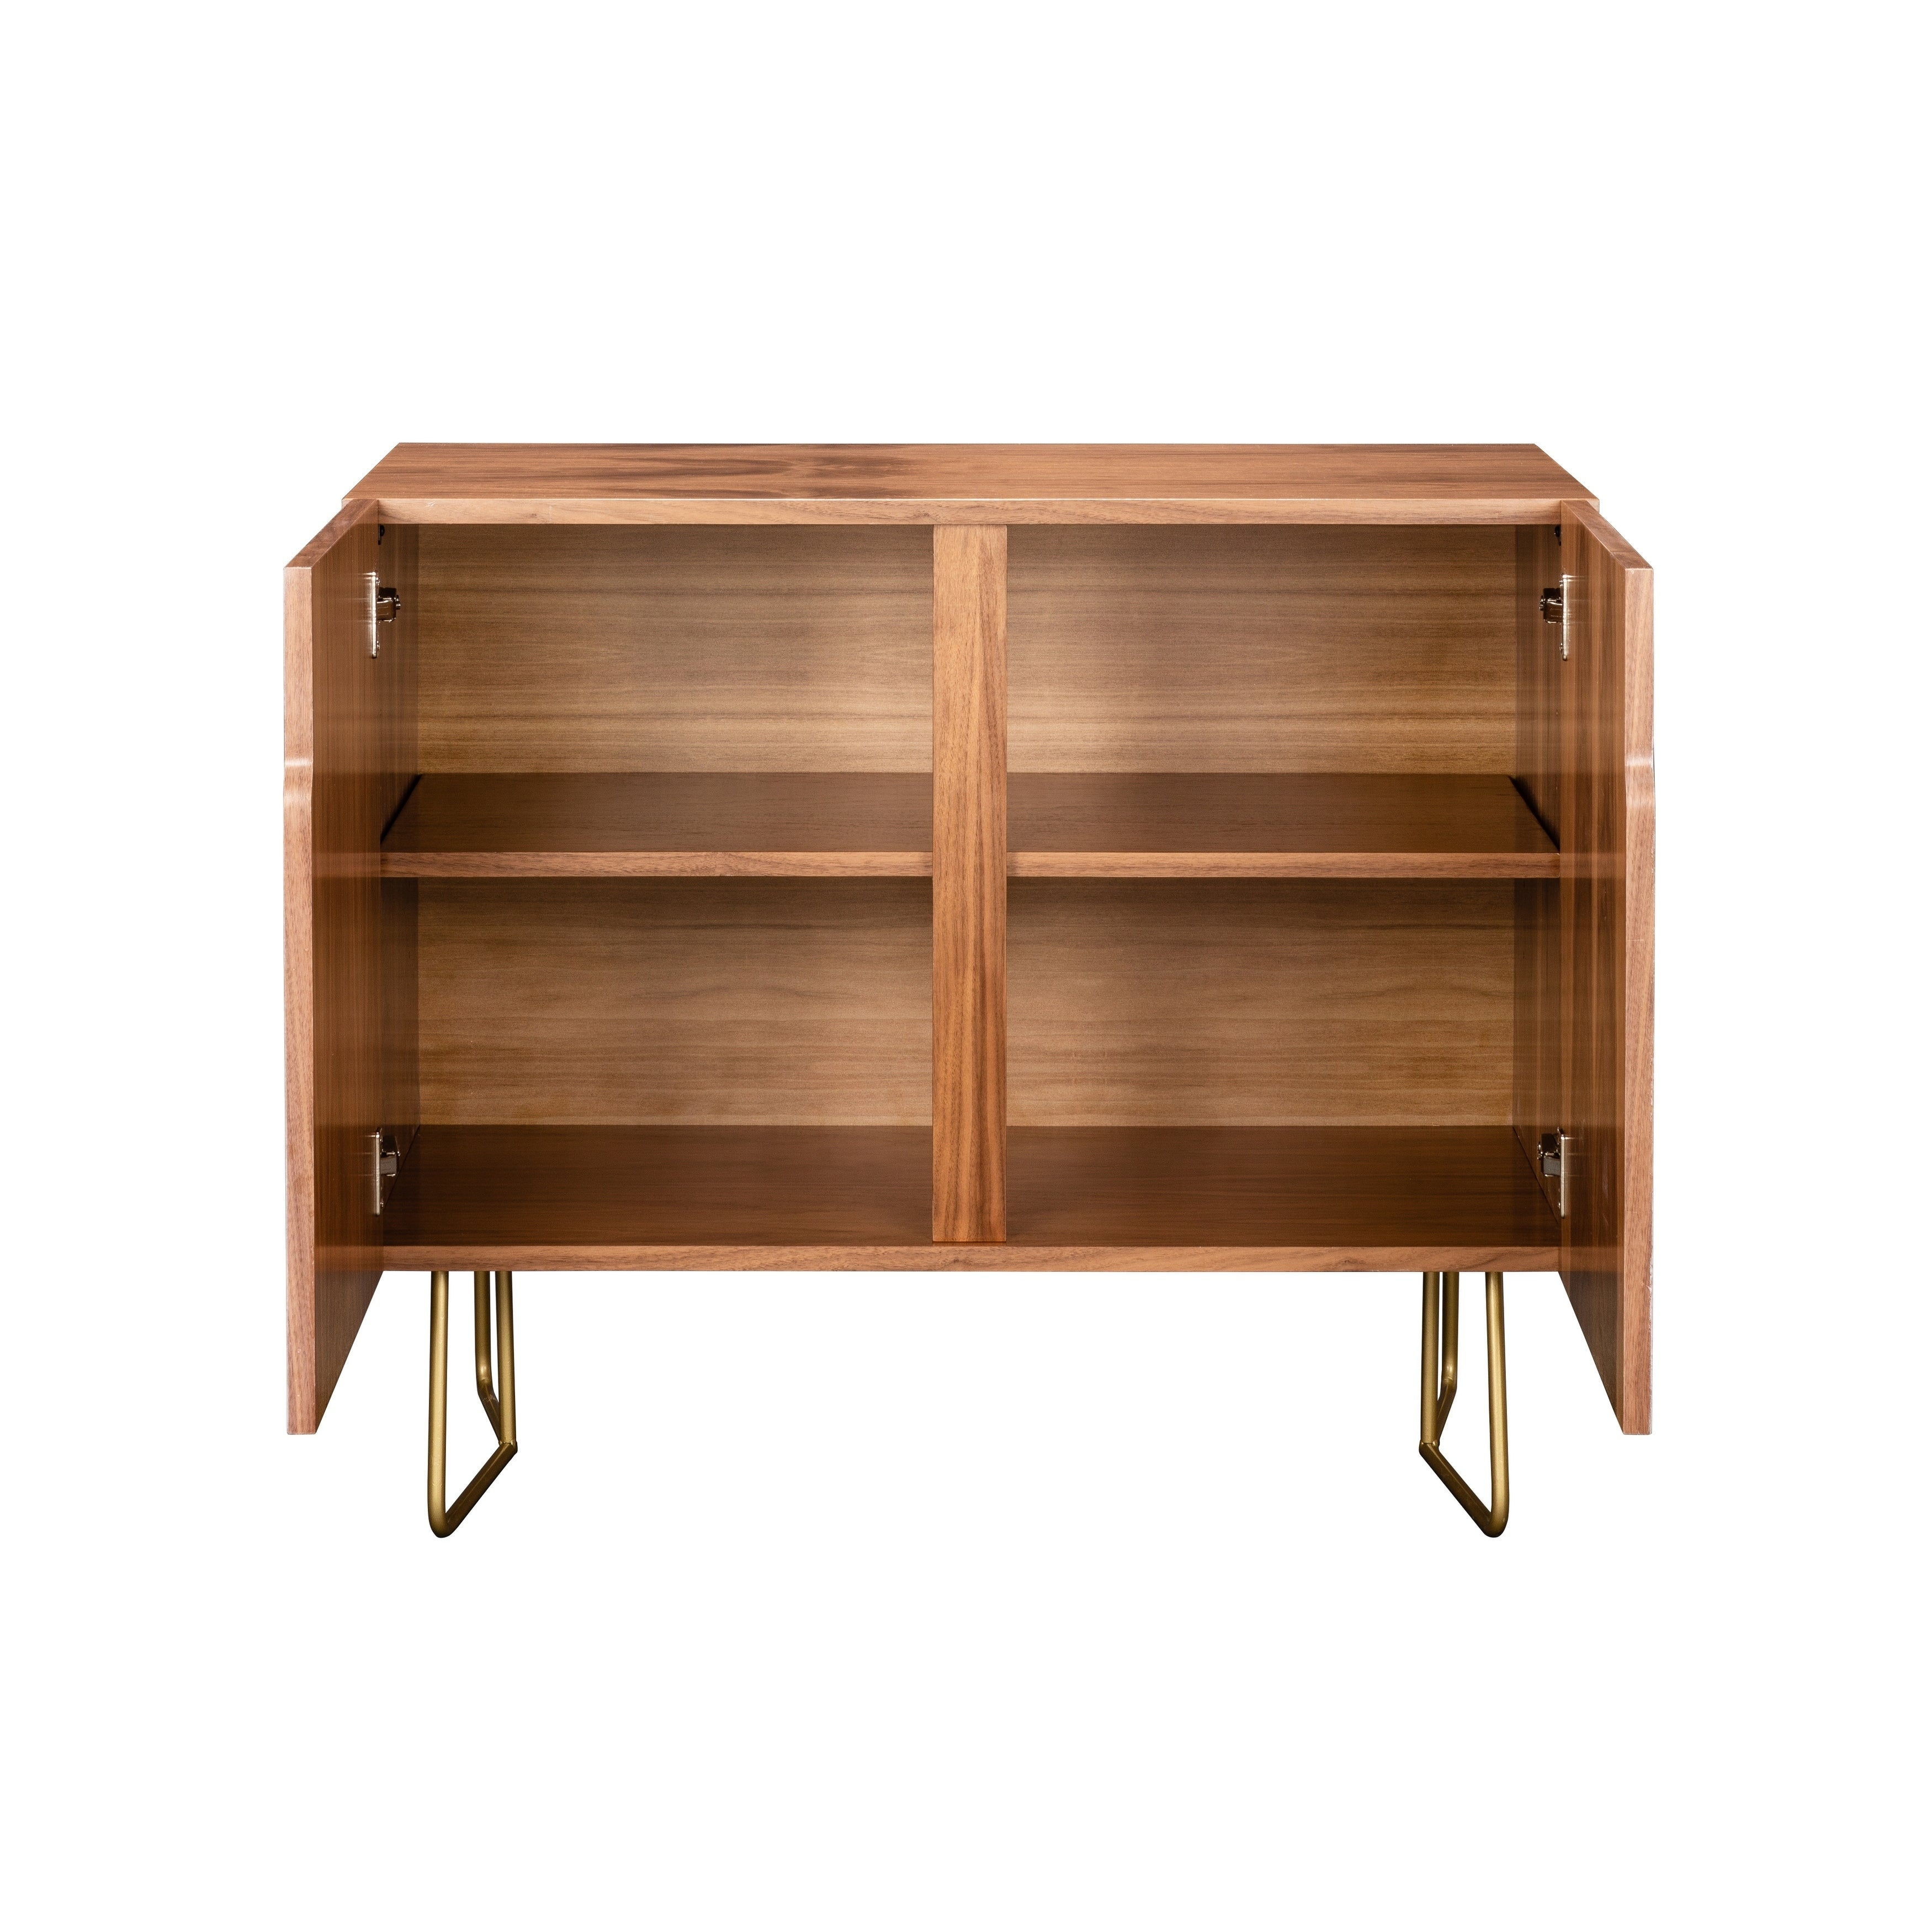 Deny Designs Fleurette Night Credenza (Birch Or Walnut, 2 Leg Options) Intended For Carson Carrington Bogard Crane Credenzas (Gallery 8 of 30)